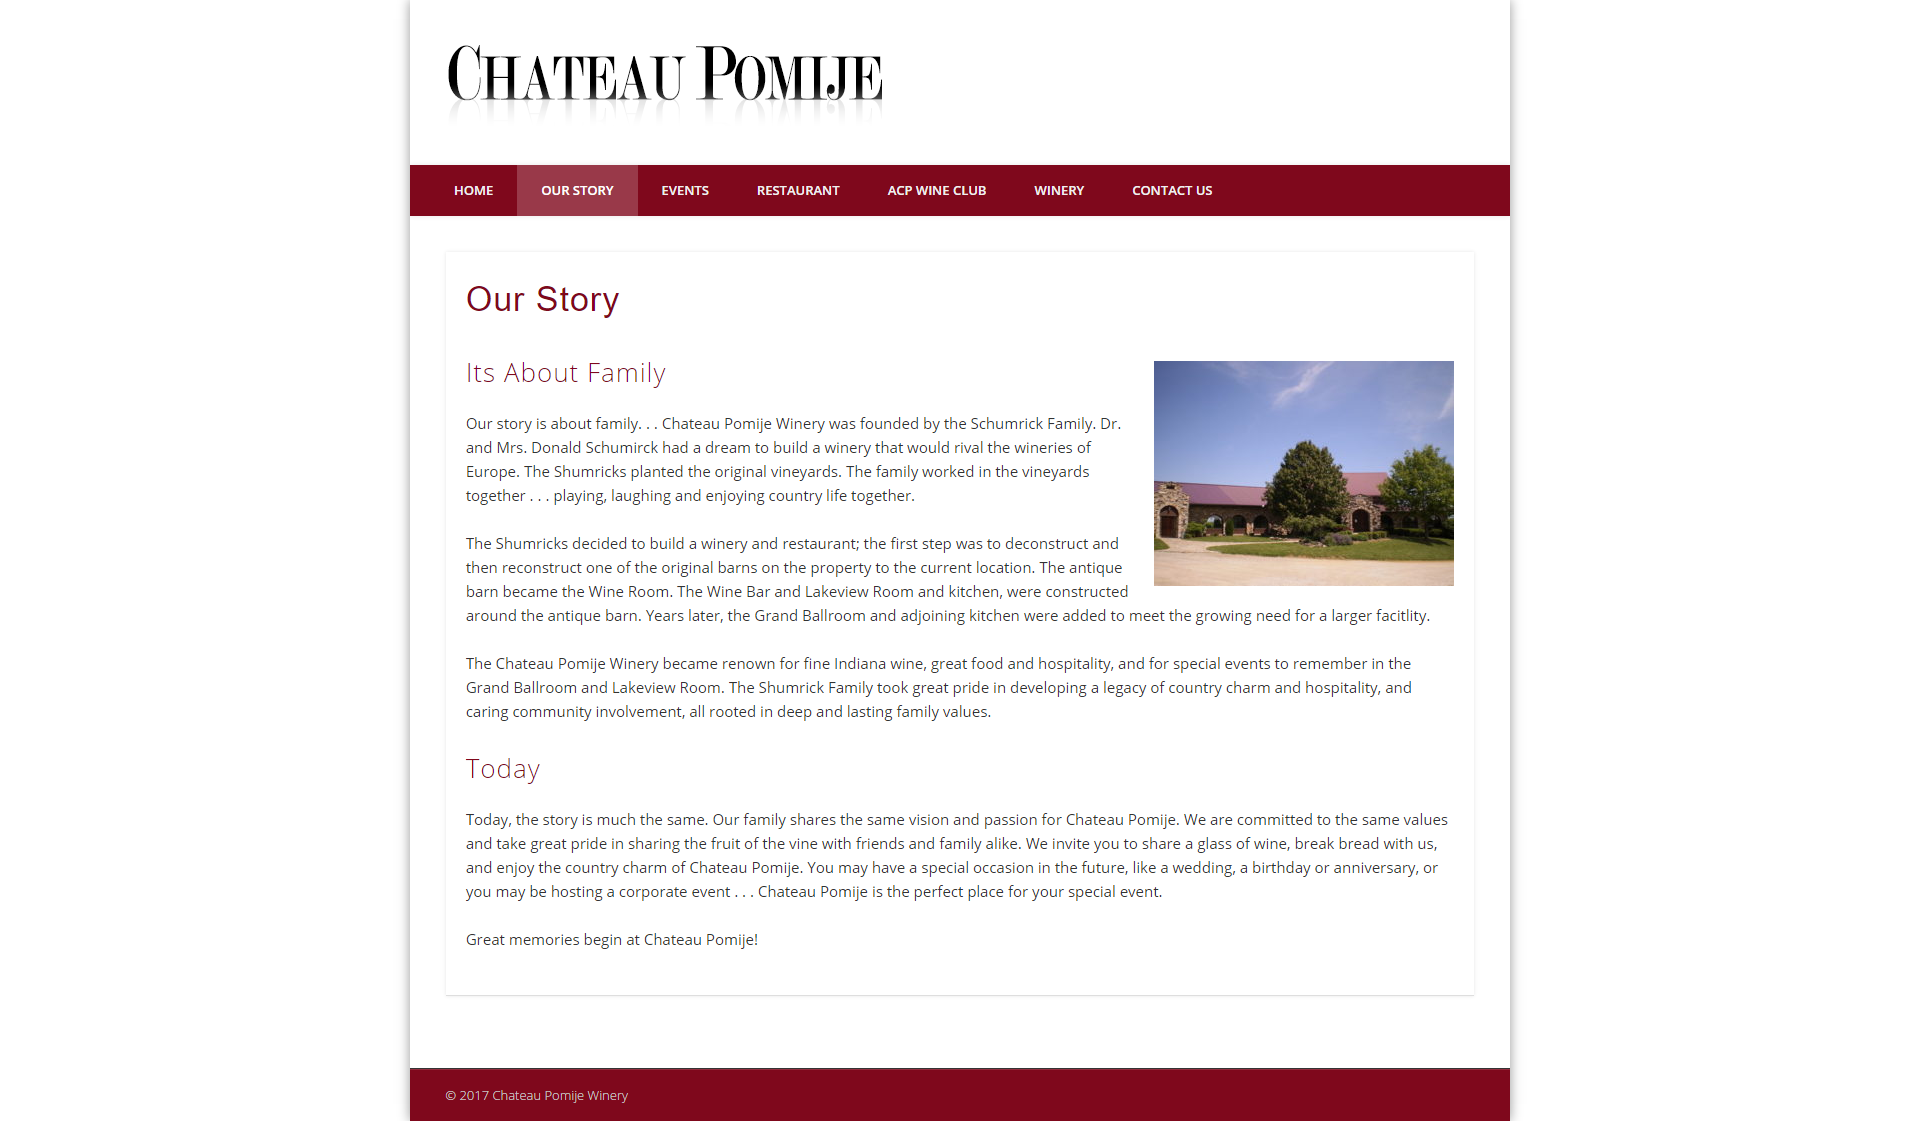 About Chateau Pomije Winery